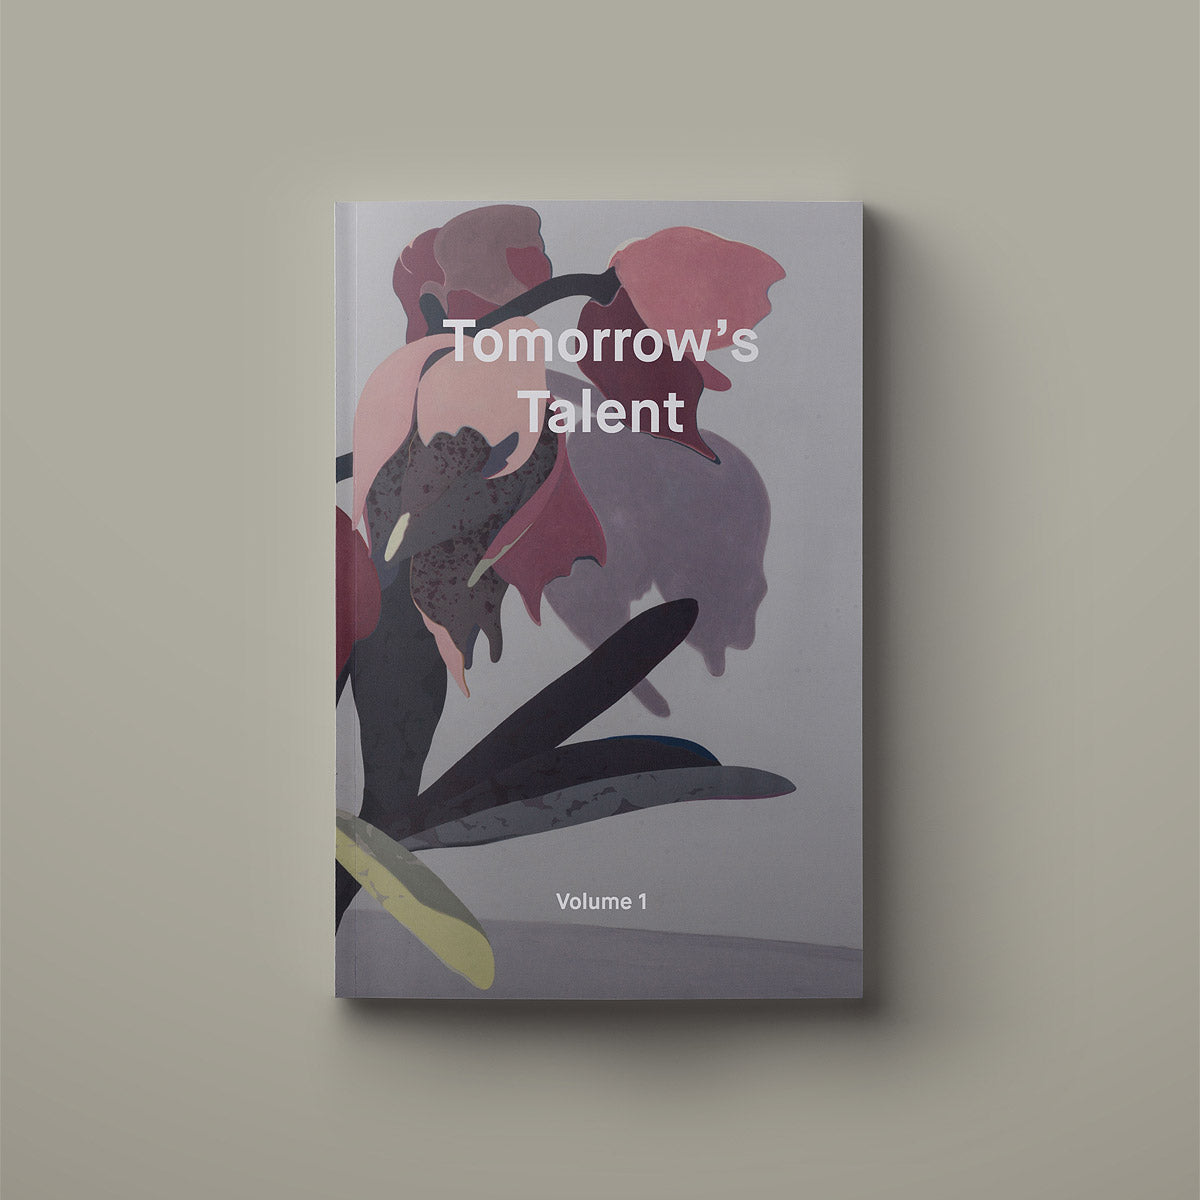 Tomorrow's Talent Book